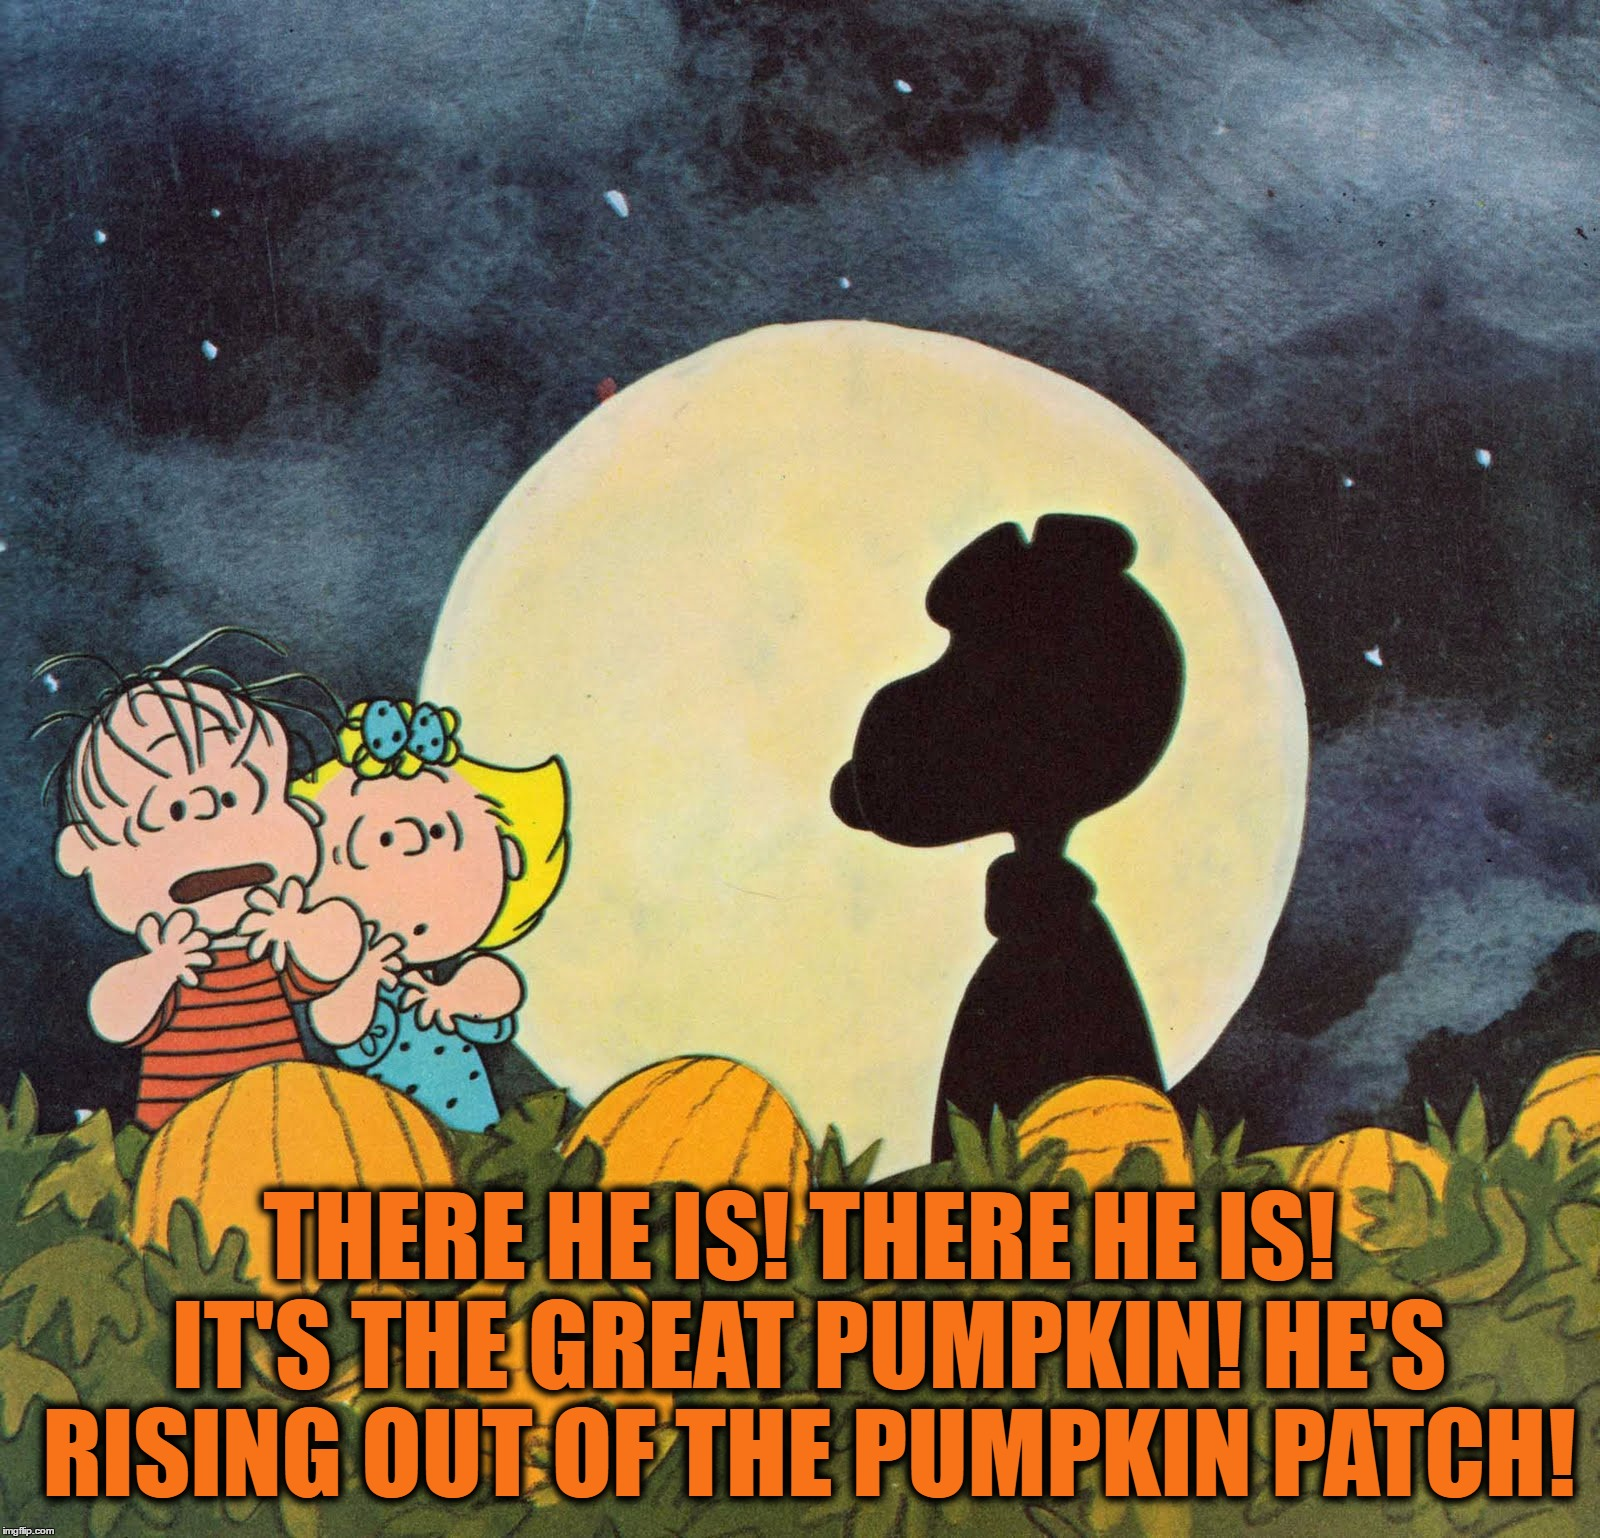 Don't Get Too Excited Linus | THERE HE IS! THERE HE IS! IT'S THE GREAT PUMPKIN! HE'S RISING OUT OF THE PUMPKIN PATCH! | image tagged in memes,funny,halloween,peanuts,the great pumpkin,trick or treat | made w/ Imgflip meme maker